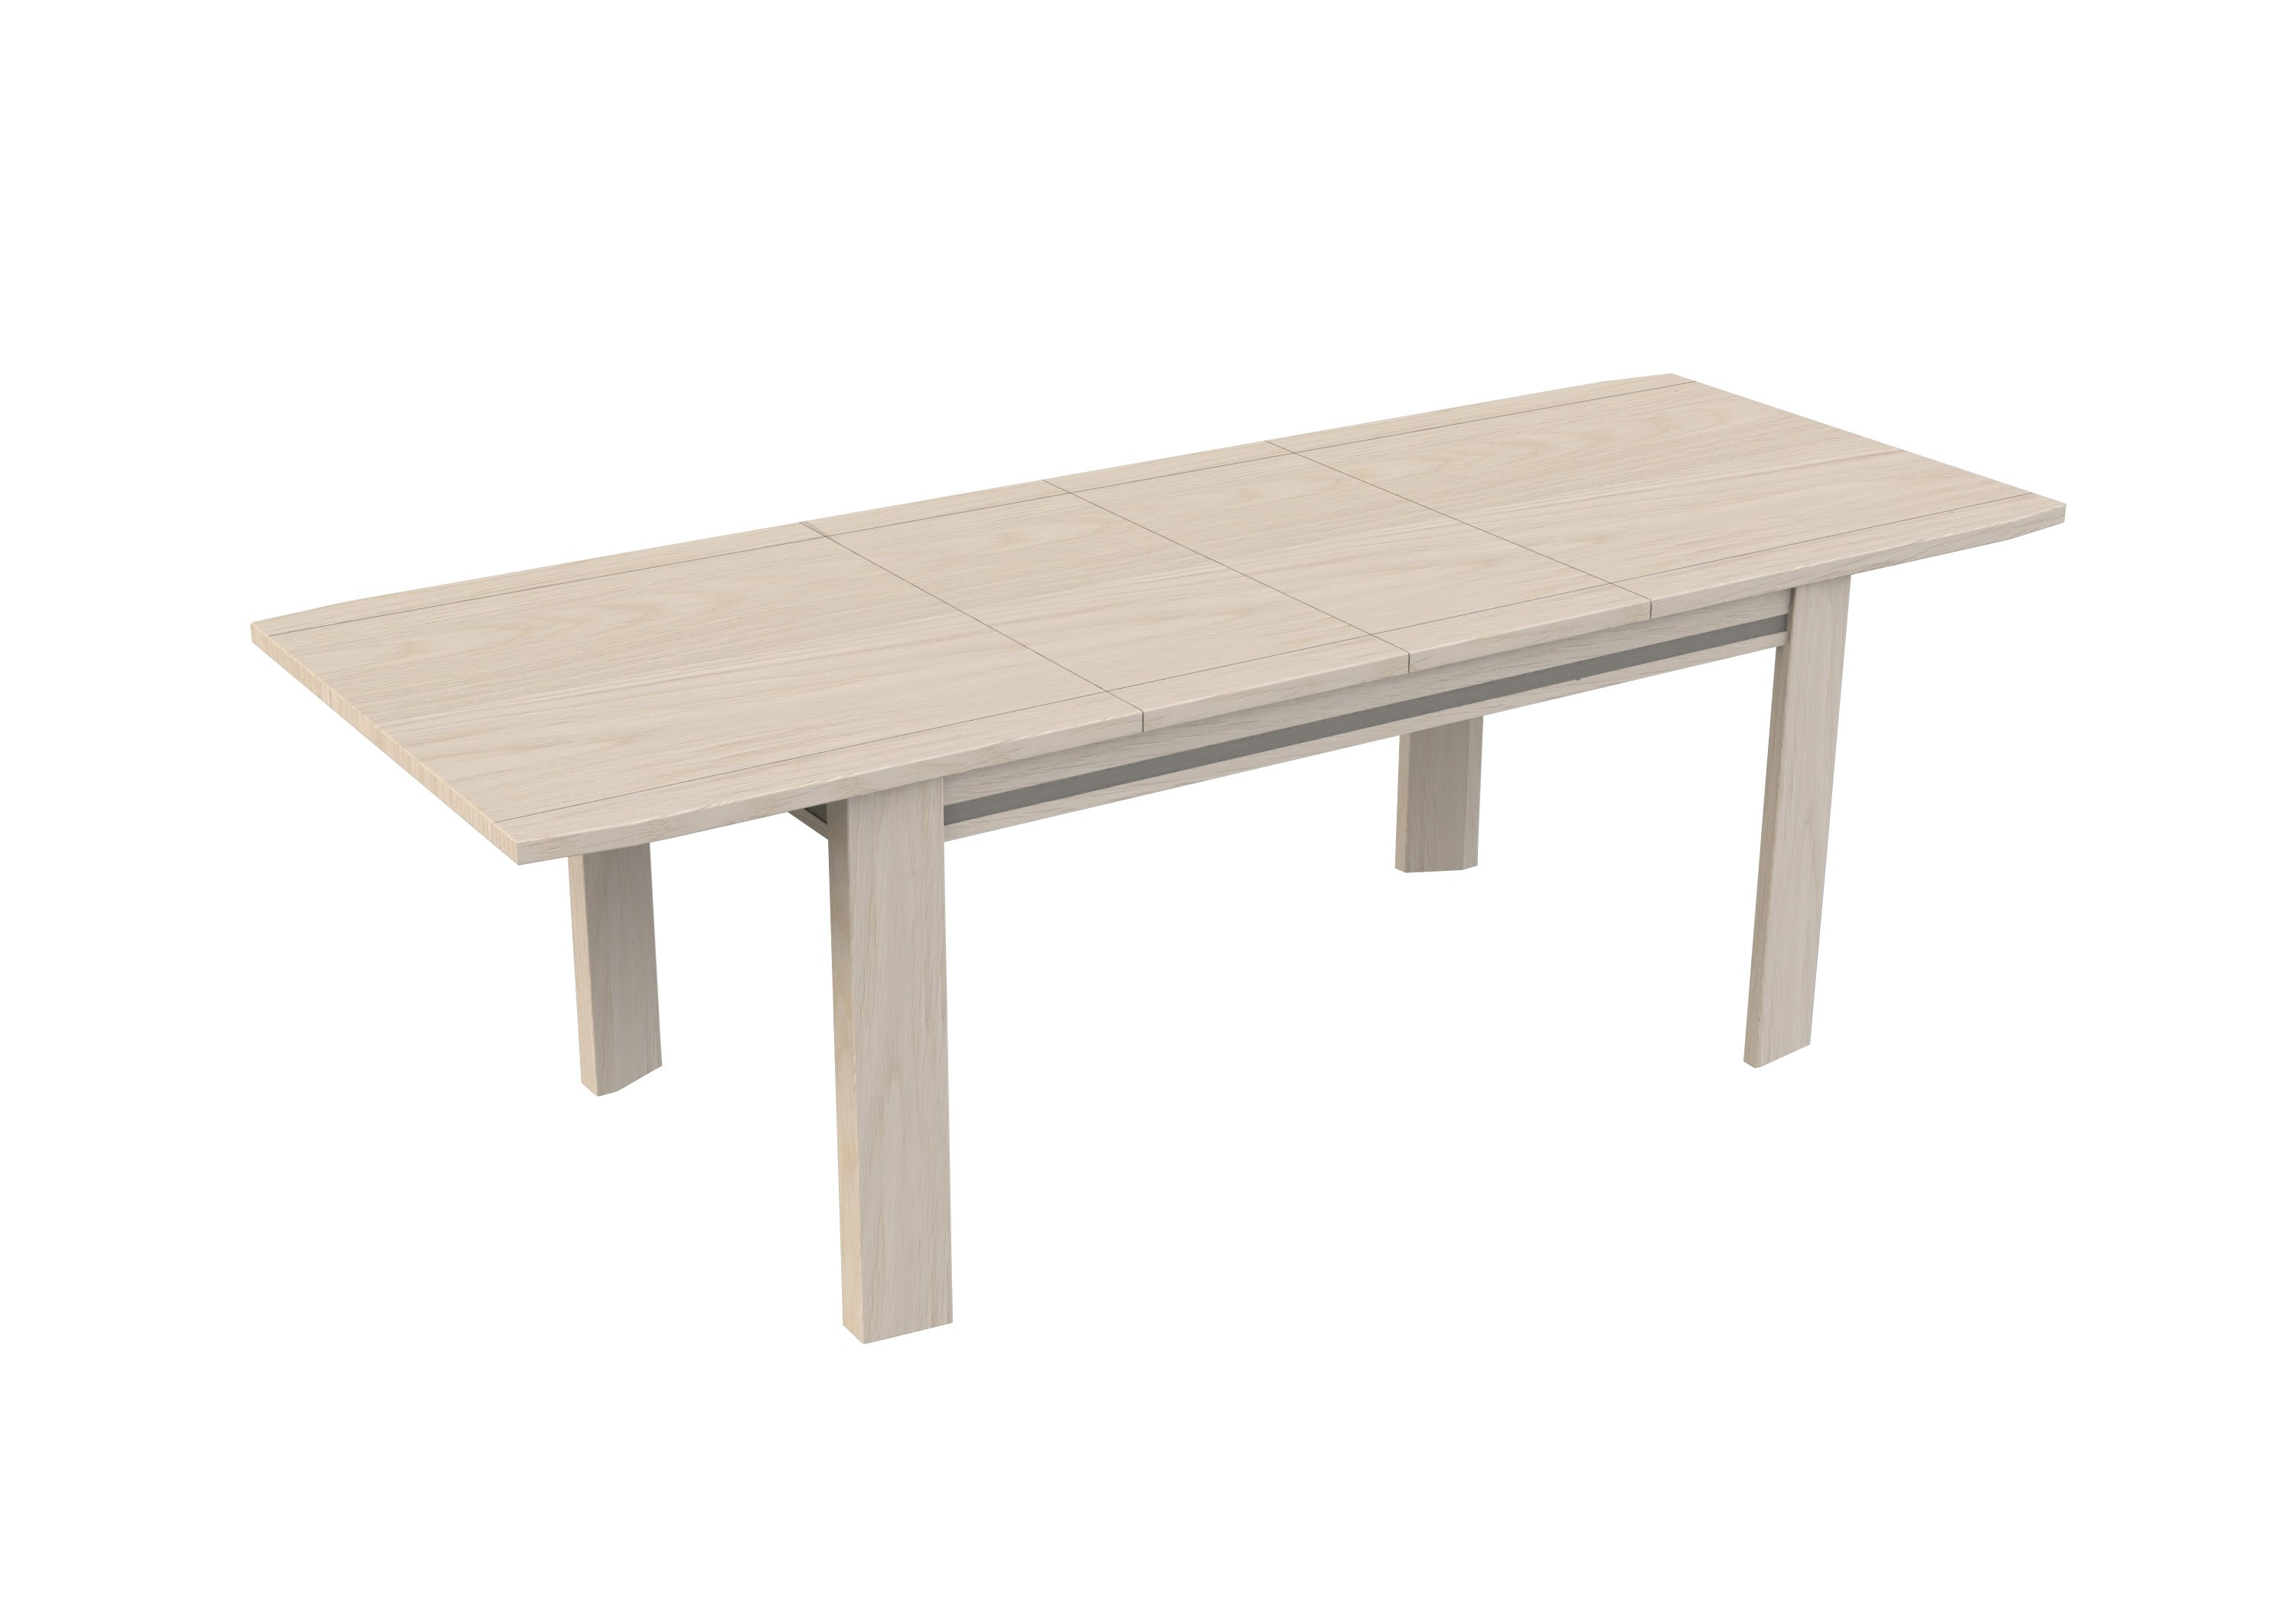 VISION TABLE 160 X 90